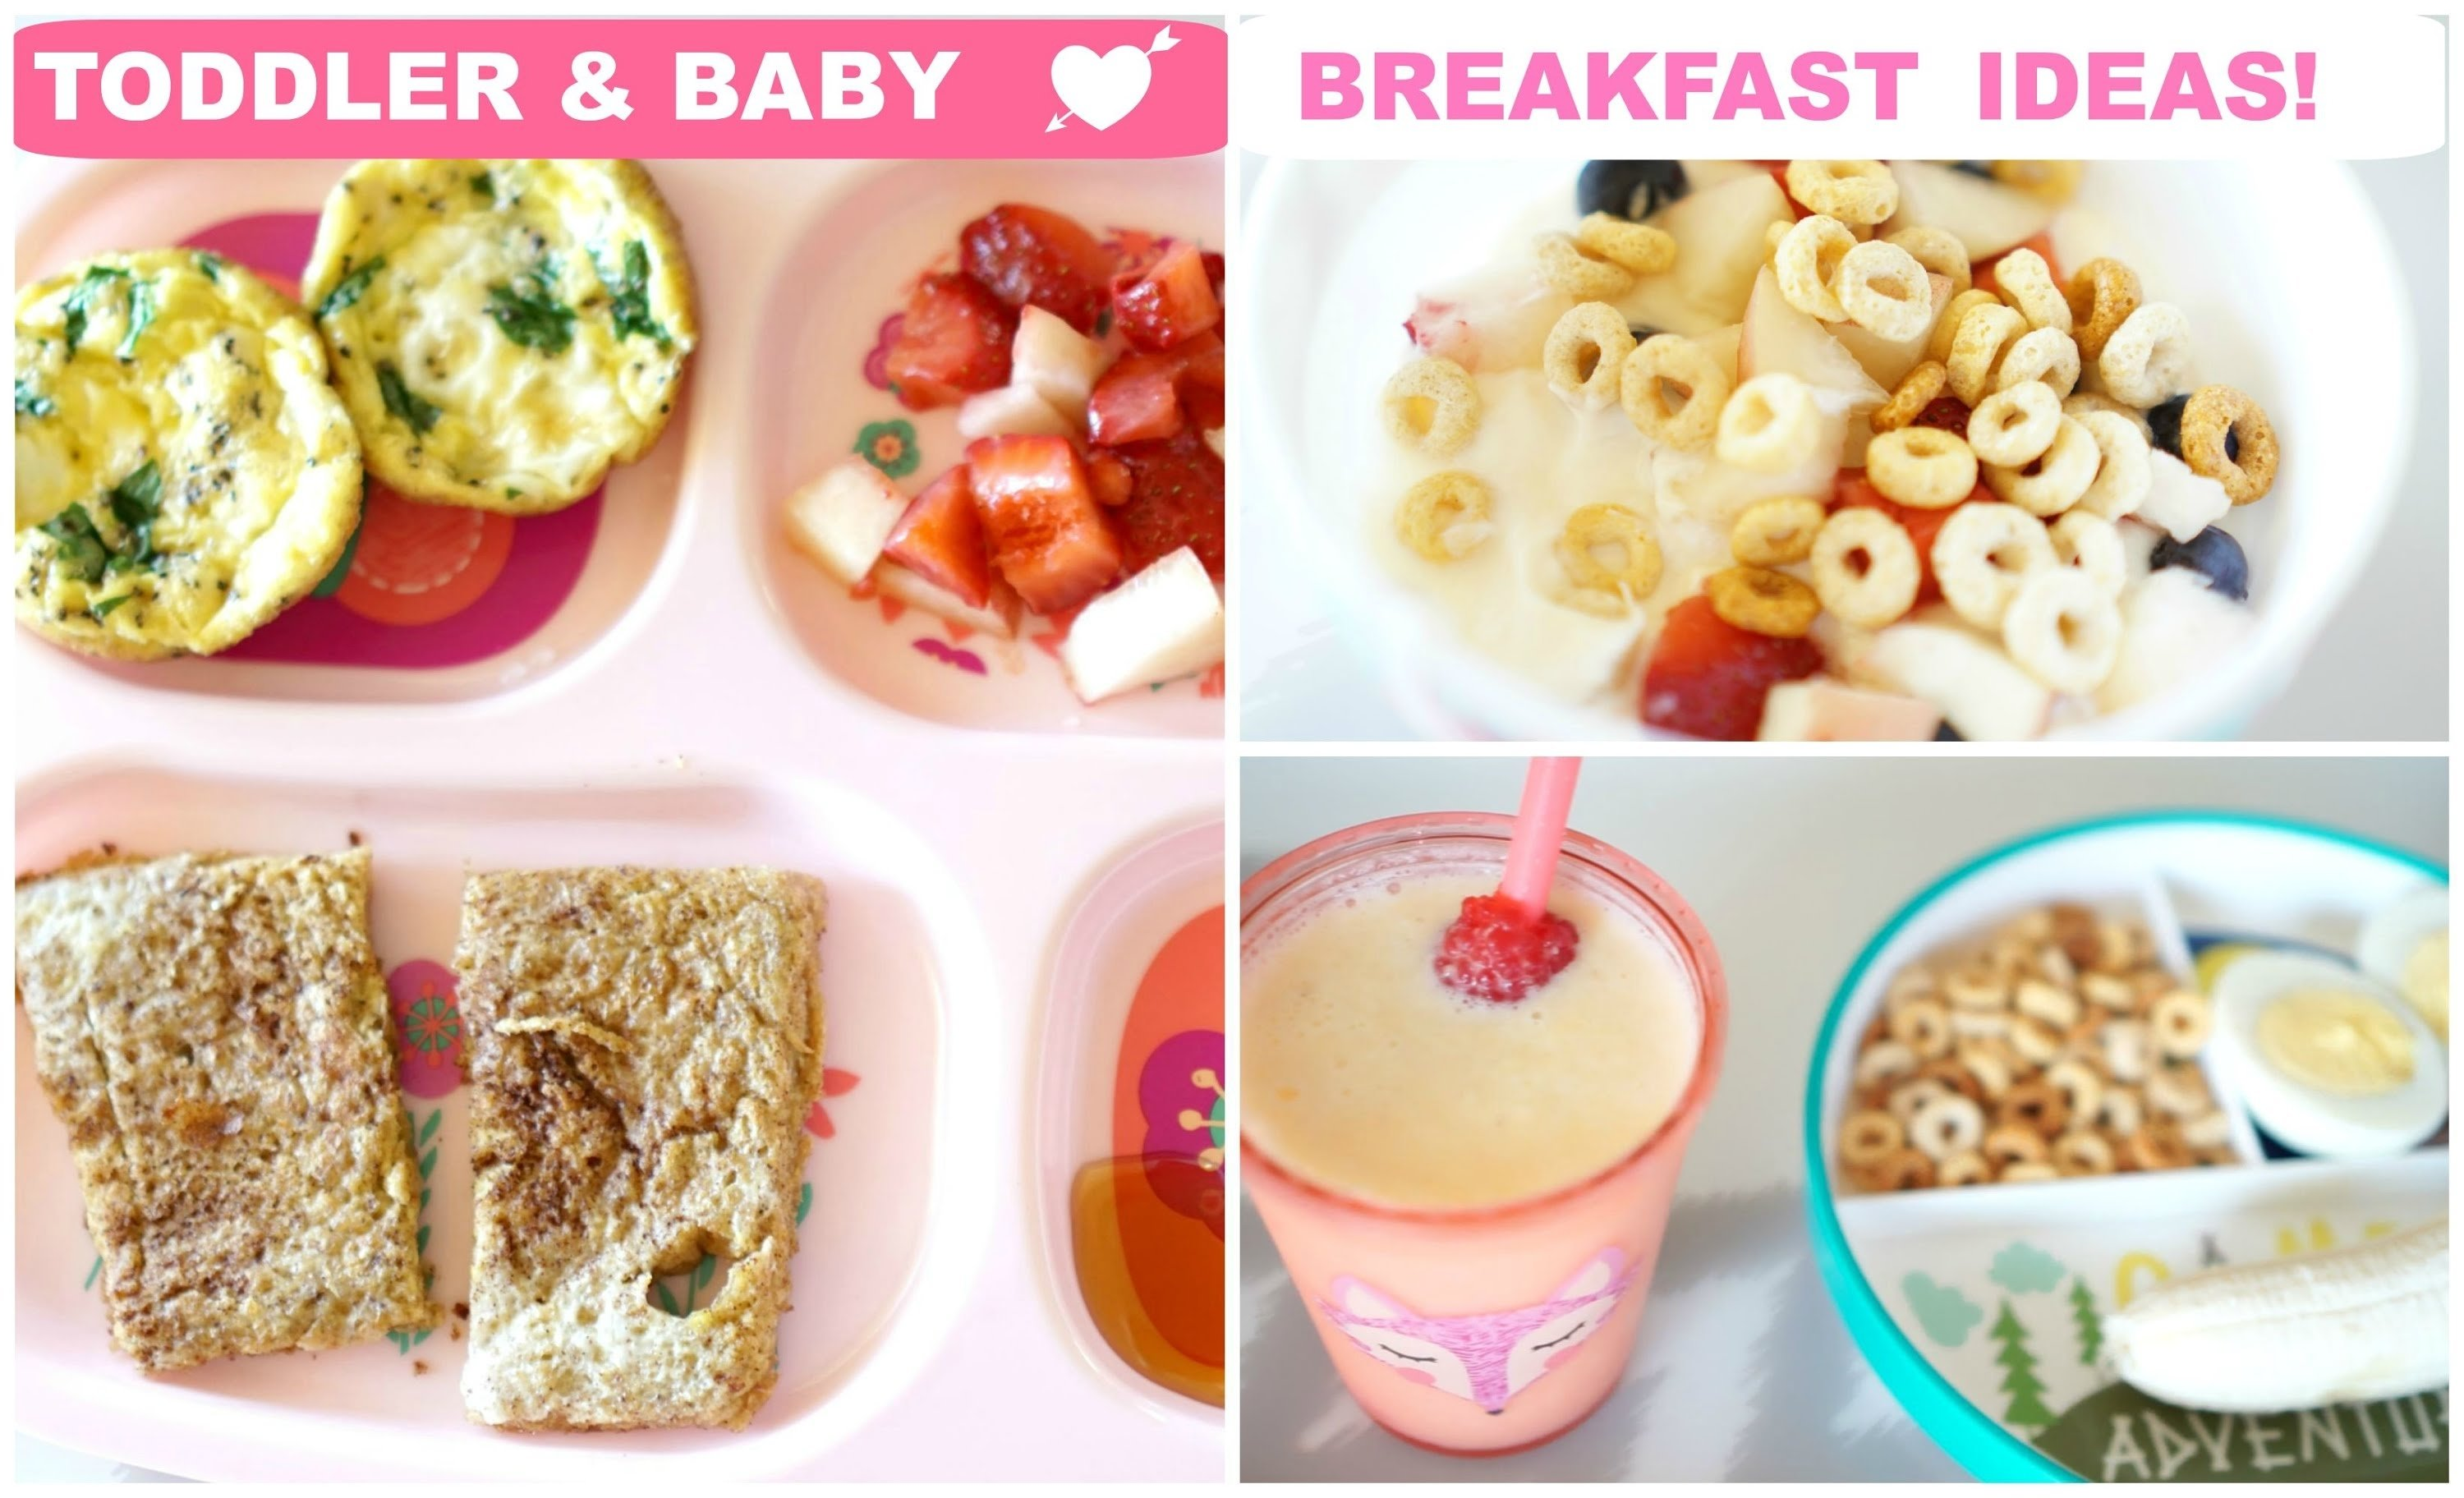 10 Most Recommended Healthy Breakfast Ideas For Toddlers breakfast ideas for toddler baby youtube 2 2020